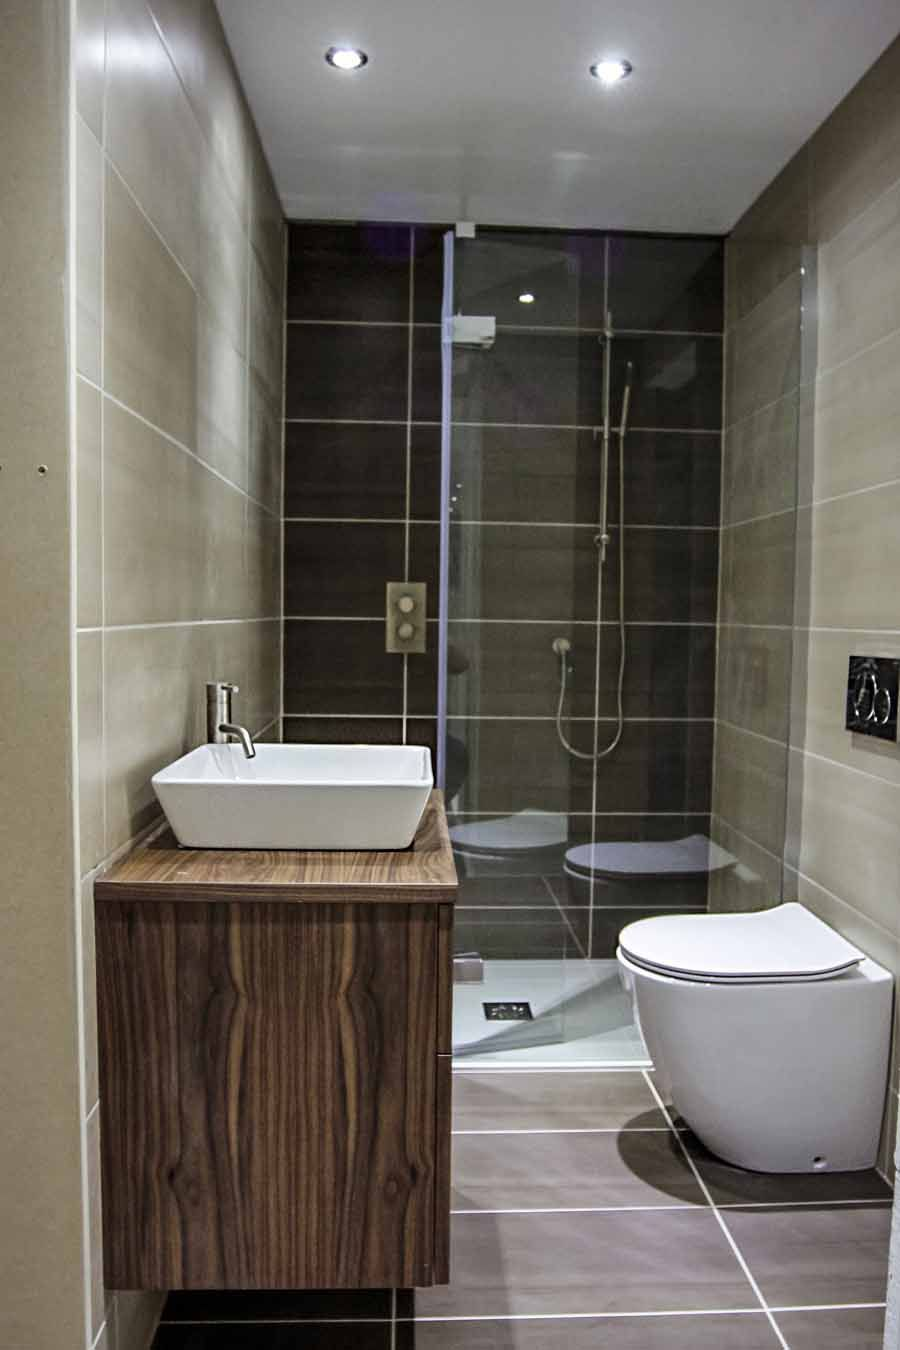 Small Luxury Bathrooms A Luxury Small Bathroom With Walkin Shower Enclosure On Display At